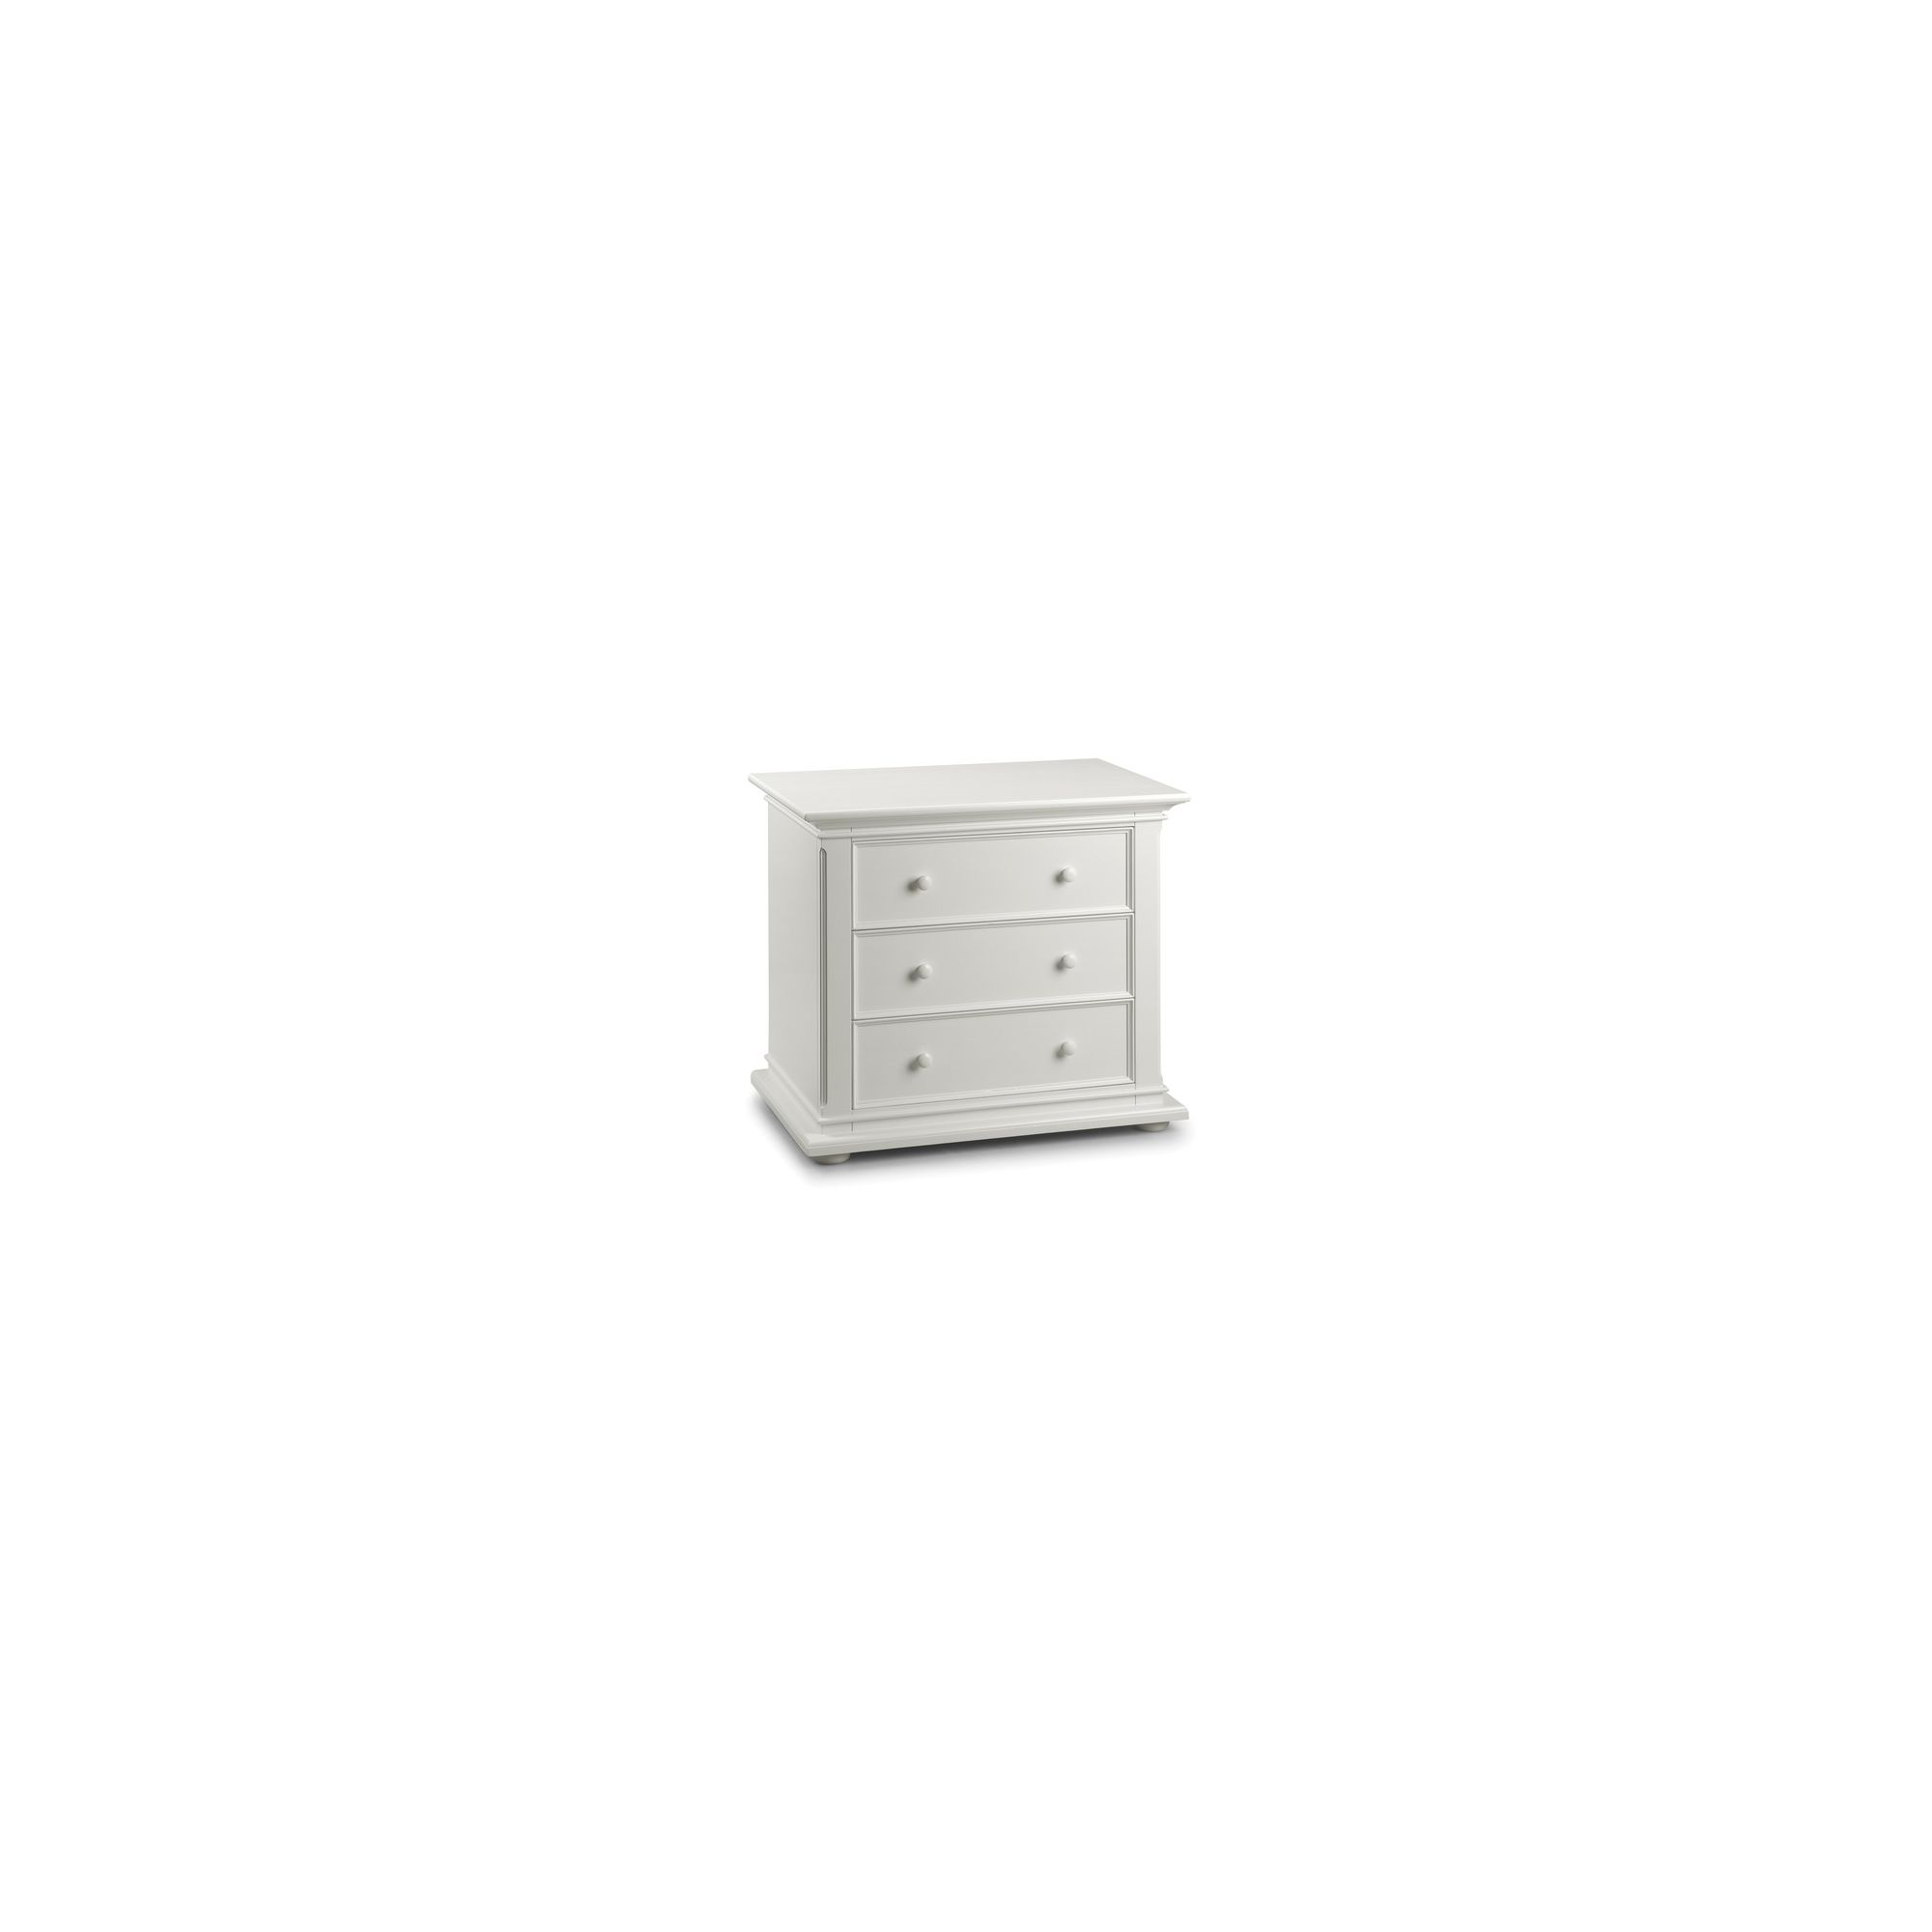 Julian Bowen Josephine 3 Drawer Chest in Off White at Tesco Direct